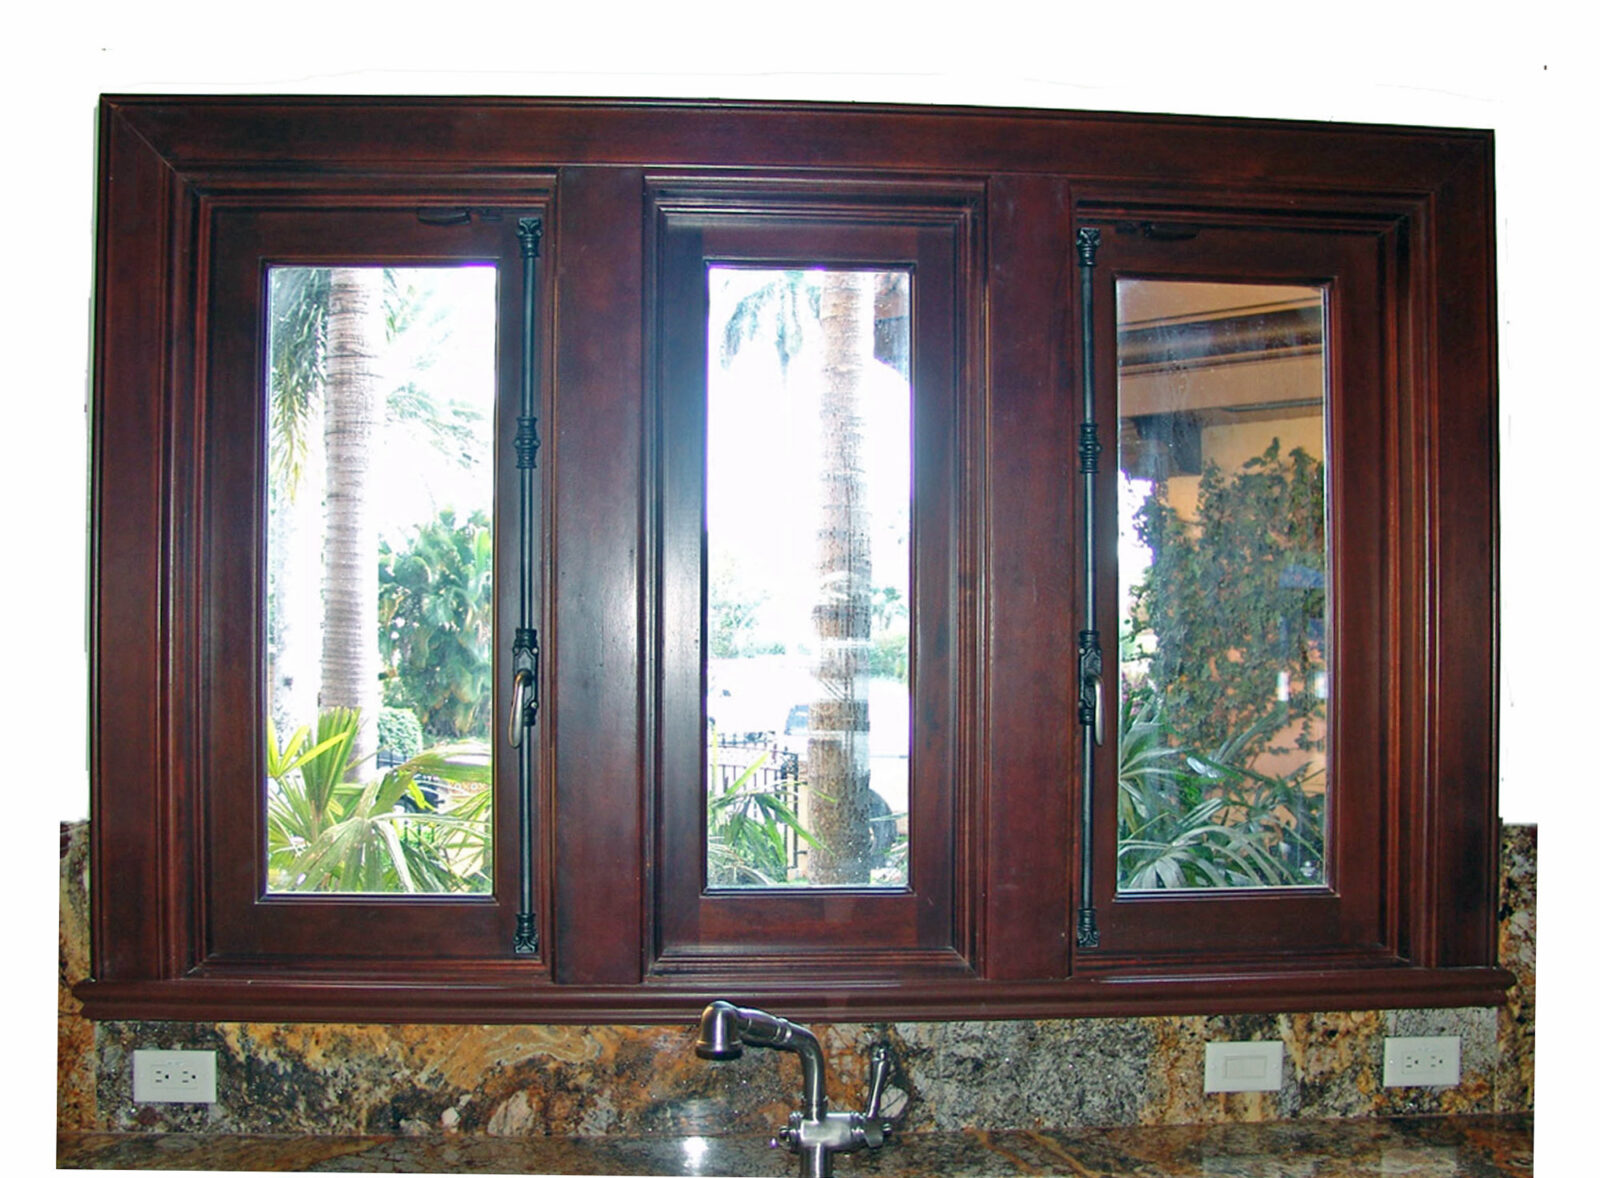 NURMI ISLAND KITCHEN MAHOGANY CASEMENT WINDOWS